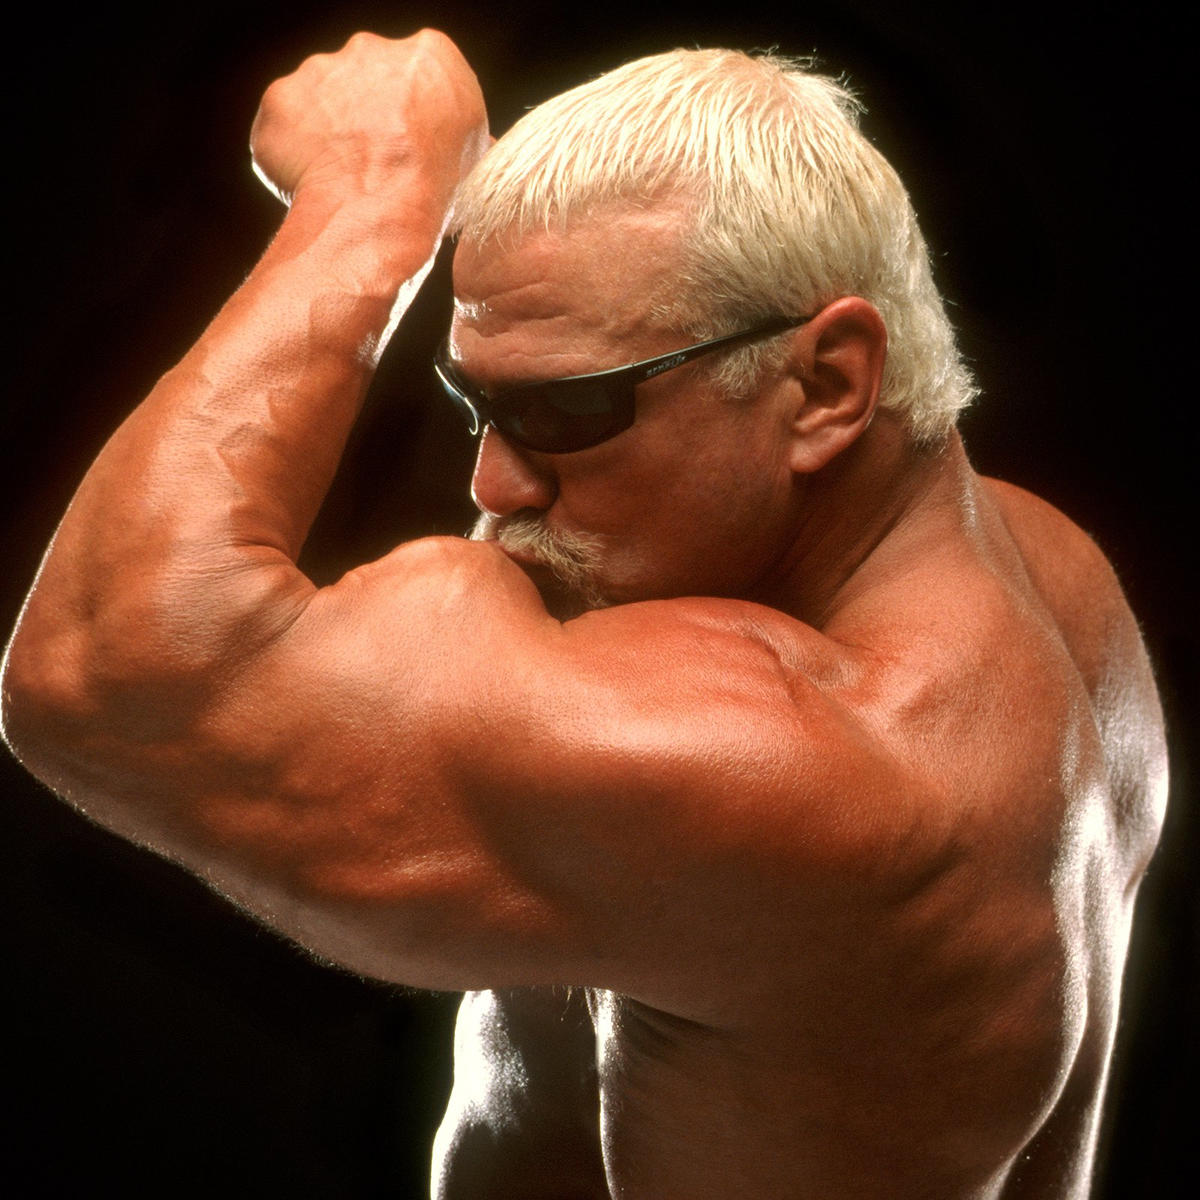 A former collegiate wrestler at the University of Michigan, Scott Steiner's strength was simply superhuman.